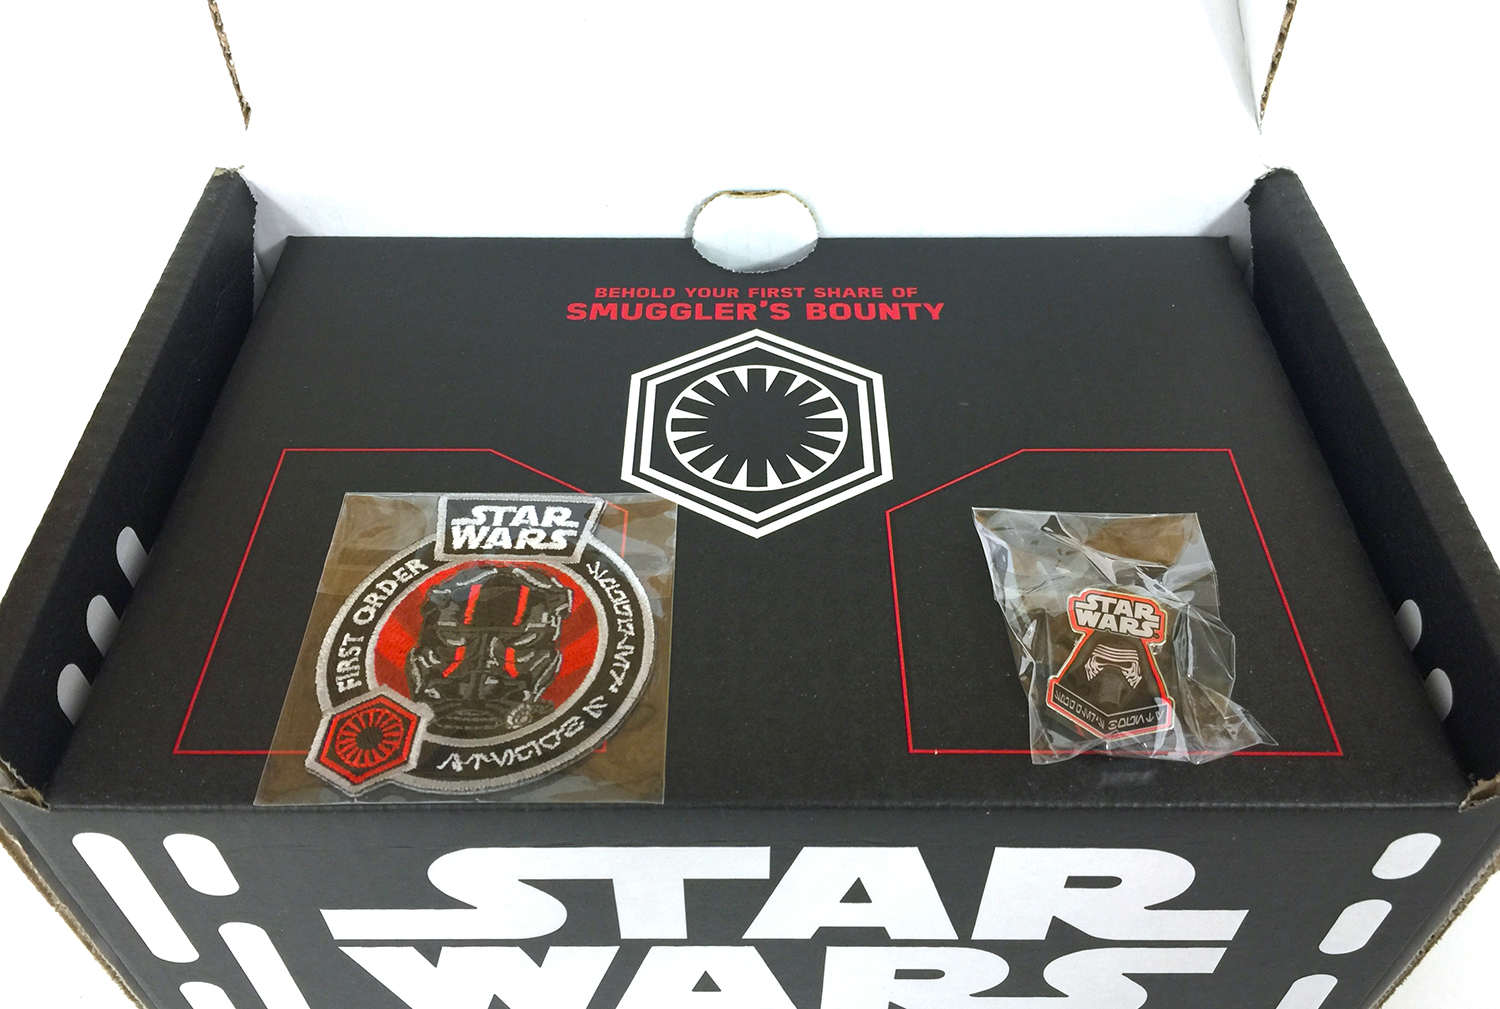 Star Wars - Smuggler's Bounty - Funko - 03 - First Level - Patch and Pin